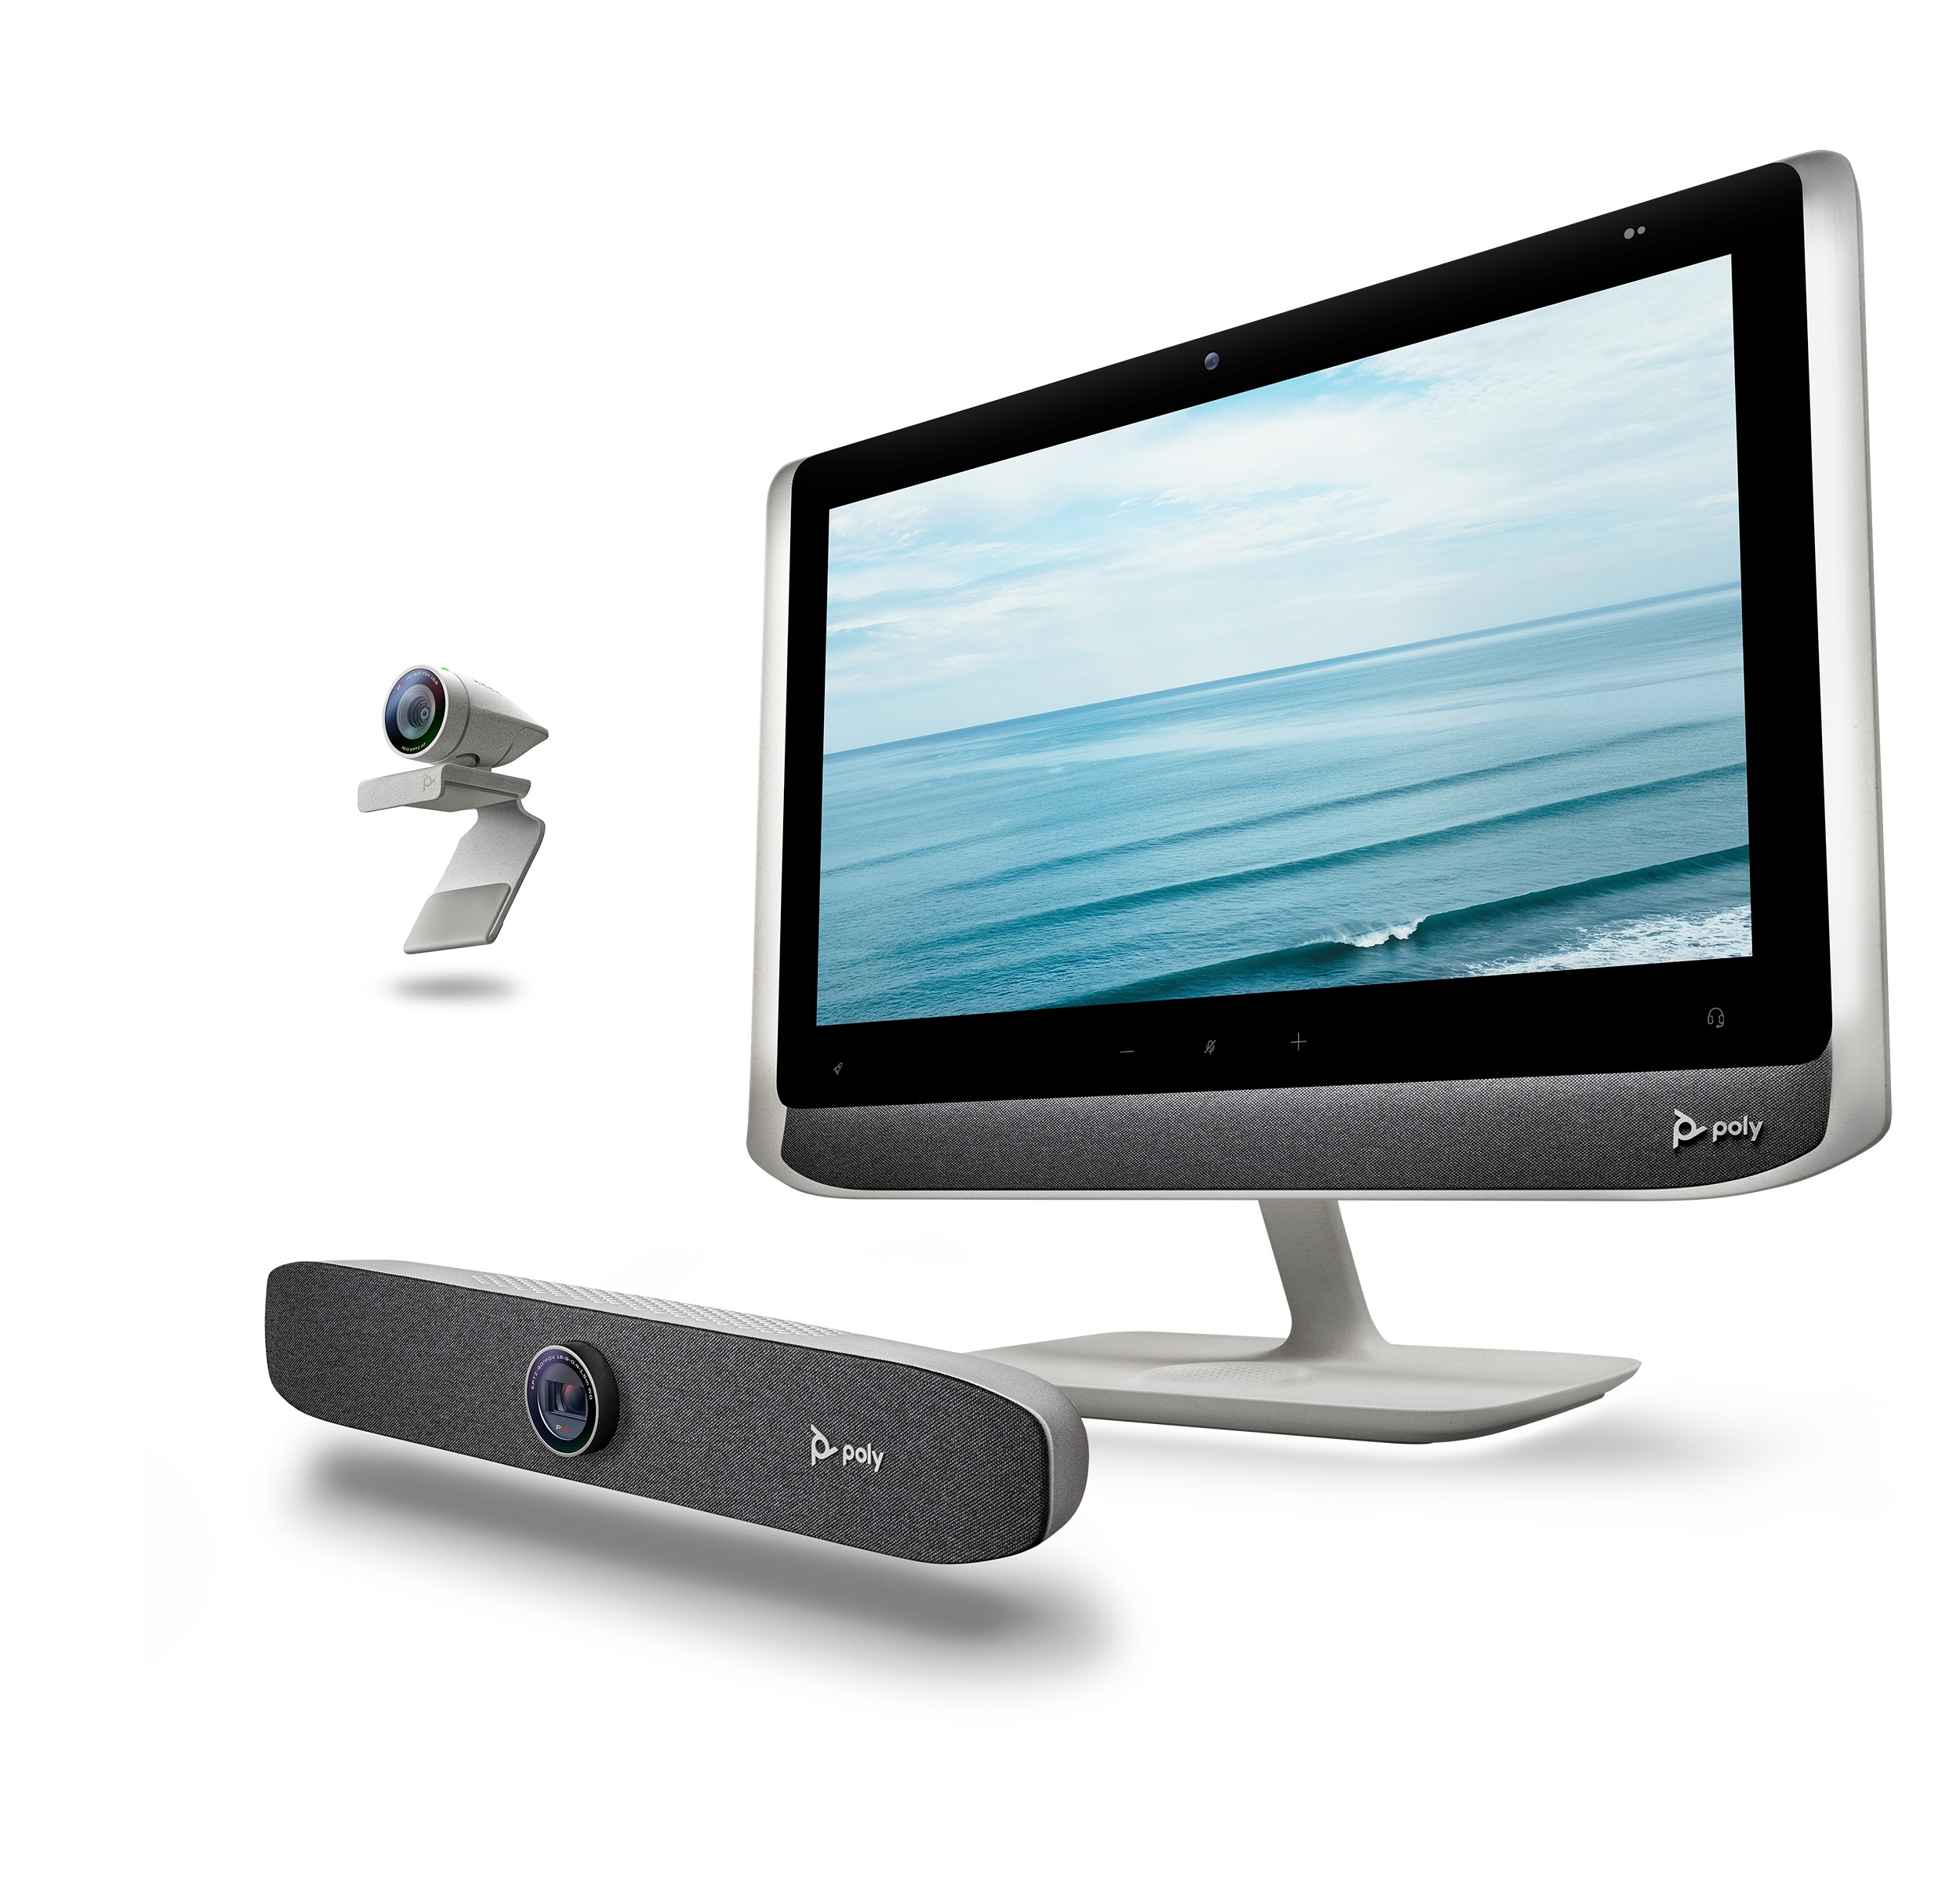 Poly Video Call Devices